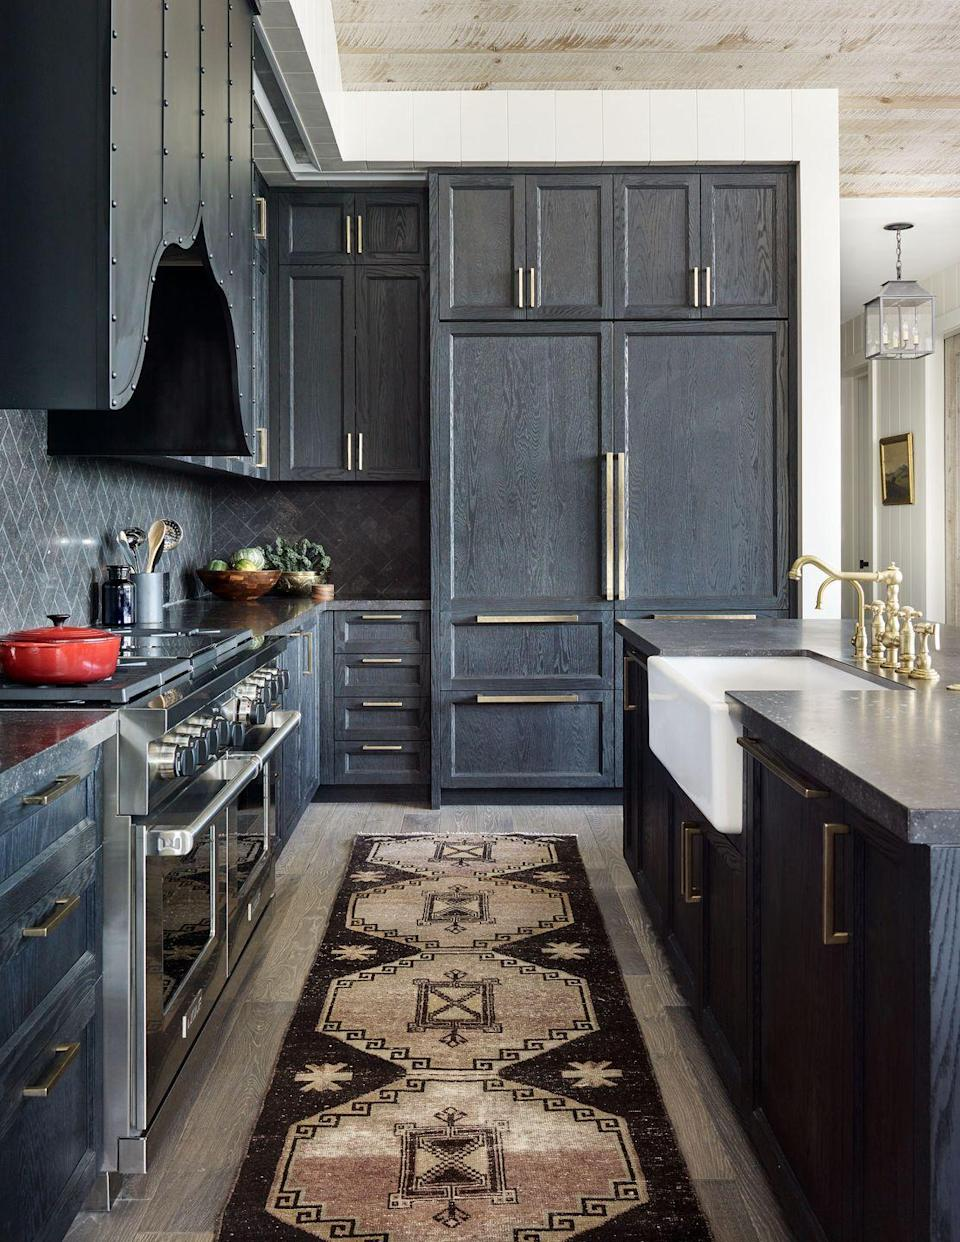 "<p>In this Montana kitchen designed by <a href=""http://palmerweiss.com/"" rel=""nofollow noopener"" target=""_blank"" data-ylk=""slk:Palmer Weiss"" class=""link rapid-noclick-resp"">Palmer Weiss</a>, cabinetry finished in a rich black with blue undertones (<a href=""http://www.provincialstorefixtures.com/"" rel=""nofollow noopener"" target=""_blank"" data-ylk=""slk:Provincial Store Fixtures"" class=""link rapid-noclick-resp"">Provincial Store Fixtures</a>) and a custom bronze hood designed with straps and rivets lends a Western sensibility. Silicon bronze brushed pulls, <a href=""https://www.rockymountainhardware.com/"" rel=""nofollow noopener"" target=""_blank"" data-ylk=""slk:Rocky Mountain Hardware"" class=""link rapid-noclick-resp"">Rocky Mountain Hardware</a>. Dual fuel range, <a href=""https://www.subzero-wolf.com/wolf/ranges"" rel=""nofollow noopener"" target=""_blank"" data-ylk=""slk:Wolf"" class=""link rapid-noclick-resp"">Wolf</a>.</p><p><a class=""link rapid-noclick-resp"" href=""https://go.redirectingat.com?id=74968X1596630&url=https%3A%2F%2Fwww.farrow-ball.com%2Fen-us%2Fpaint-colours%2Frailings&sref=https%3A%2F%2Fwww.veranda.com%2Fdecorating-ideas%2Fcolor-ideas%2Fg28700927%2Fkitchen-paint-colors%2F"" rel=""nofollow noopener"" target=""_blank"" data-ylk=""slk:Get the Look"">Get the Look</a></p>"